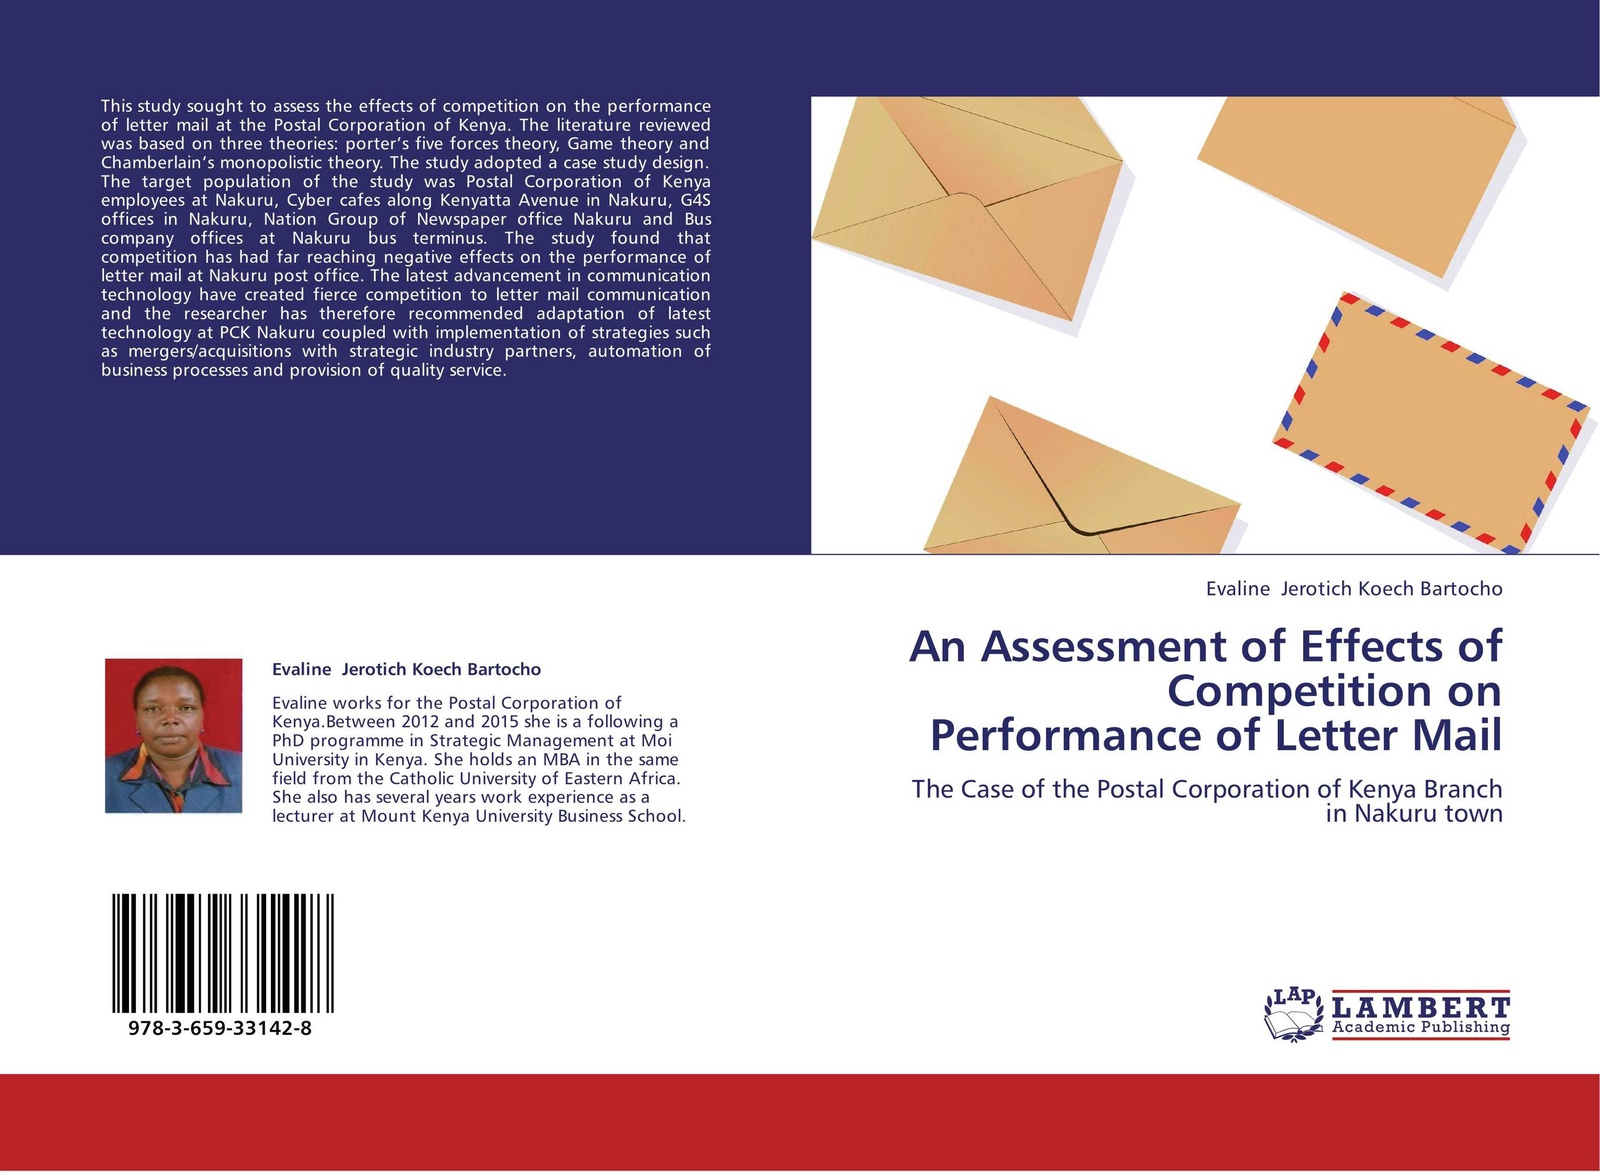 Evaline Jerotich Koech Bartocho An Assessment of Effects of Competition on Performance of Letter Mail pck lm15